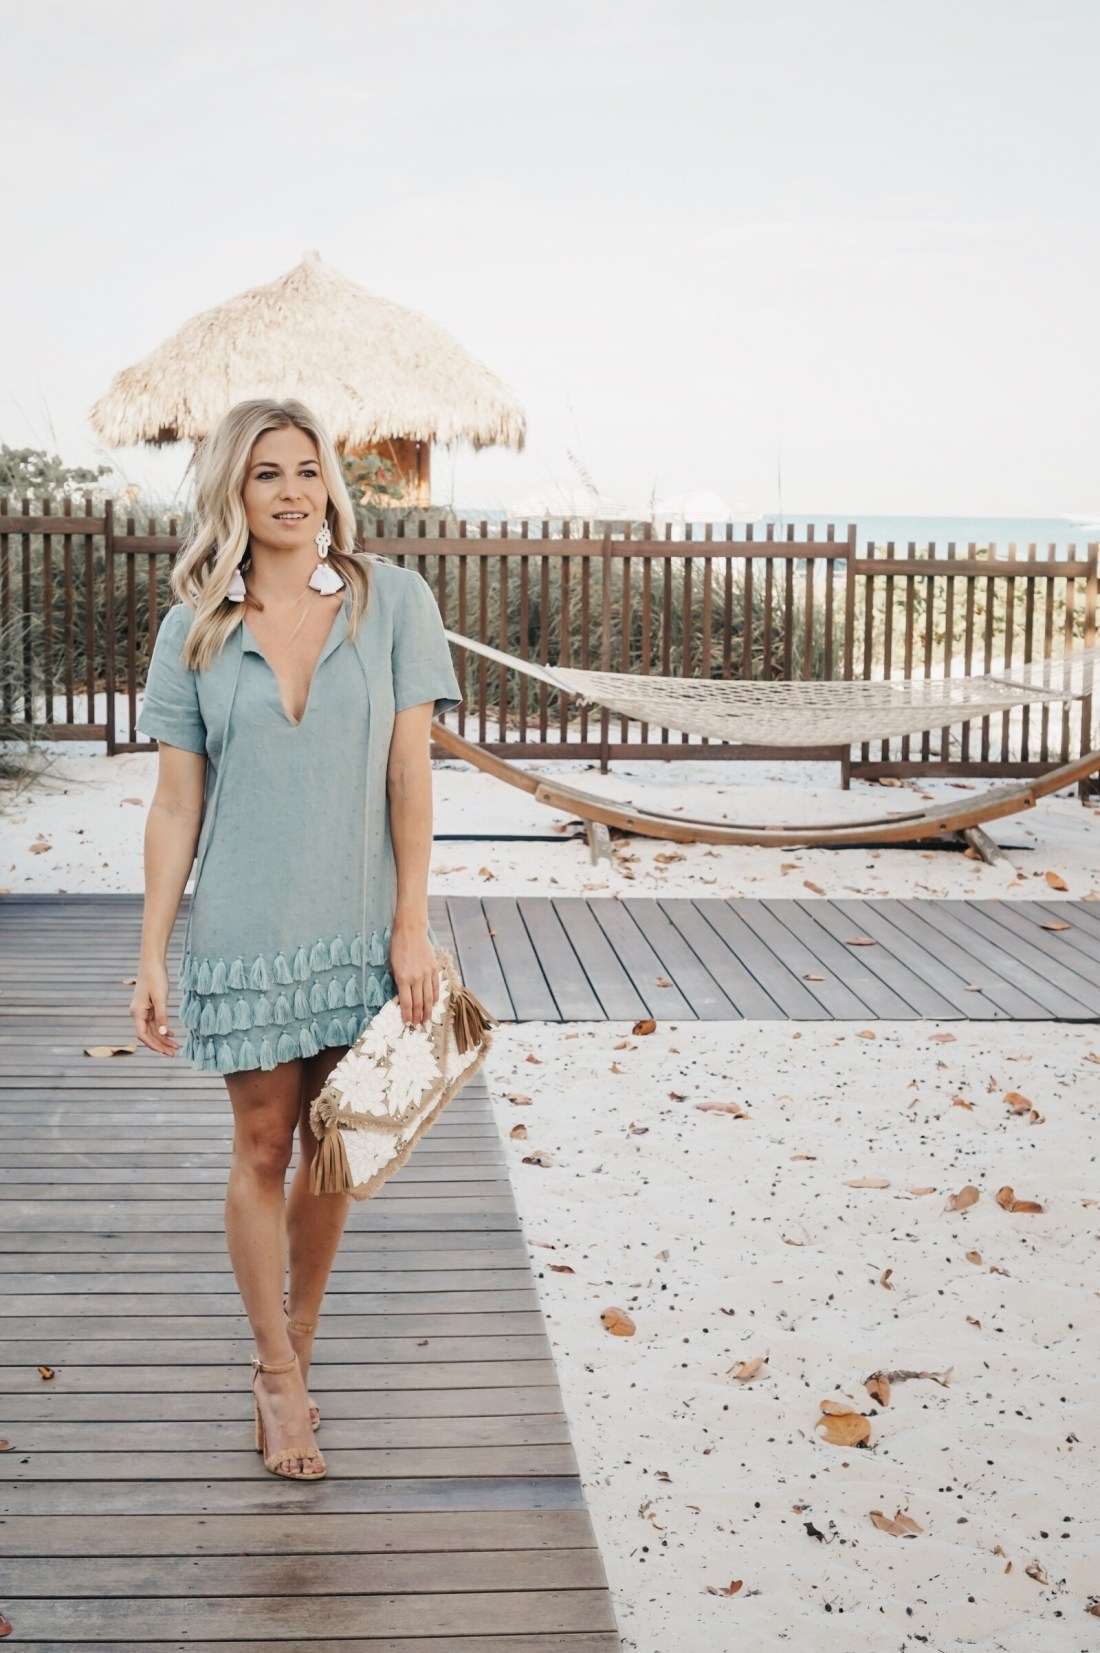 light blue shift dress, white statement earrings and summer clutch